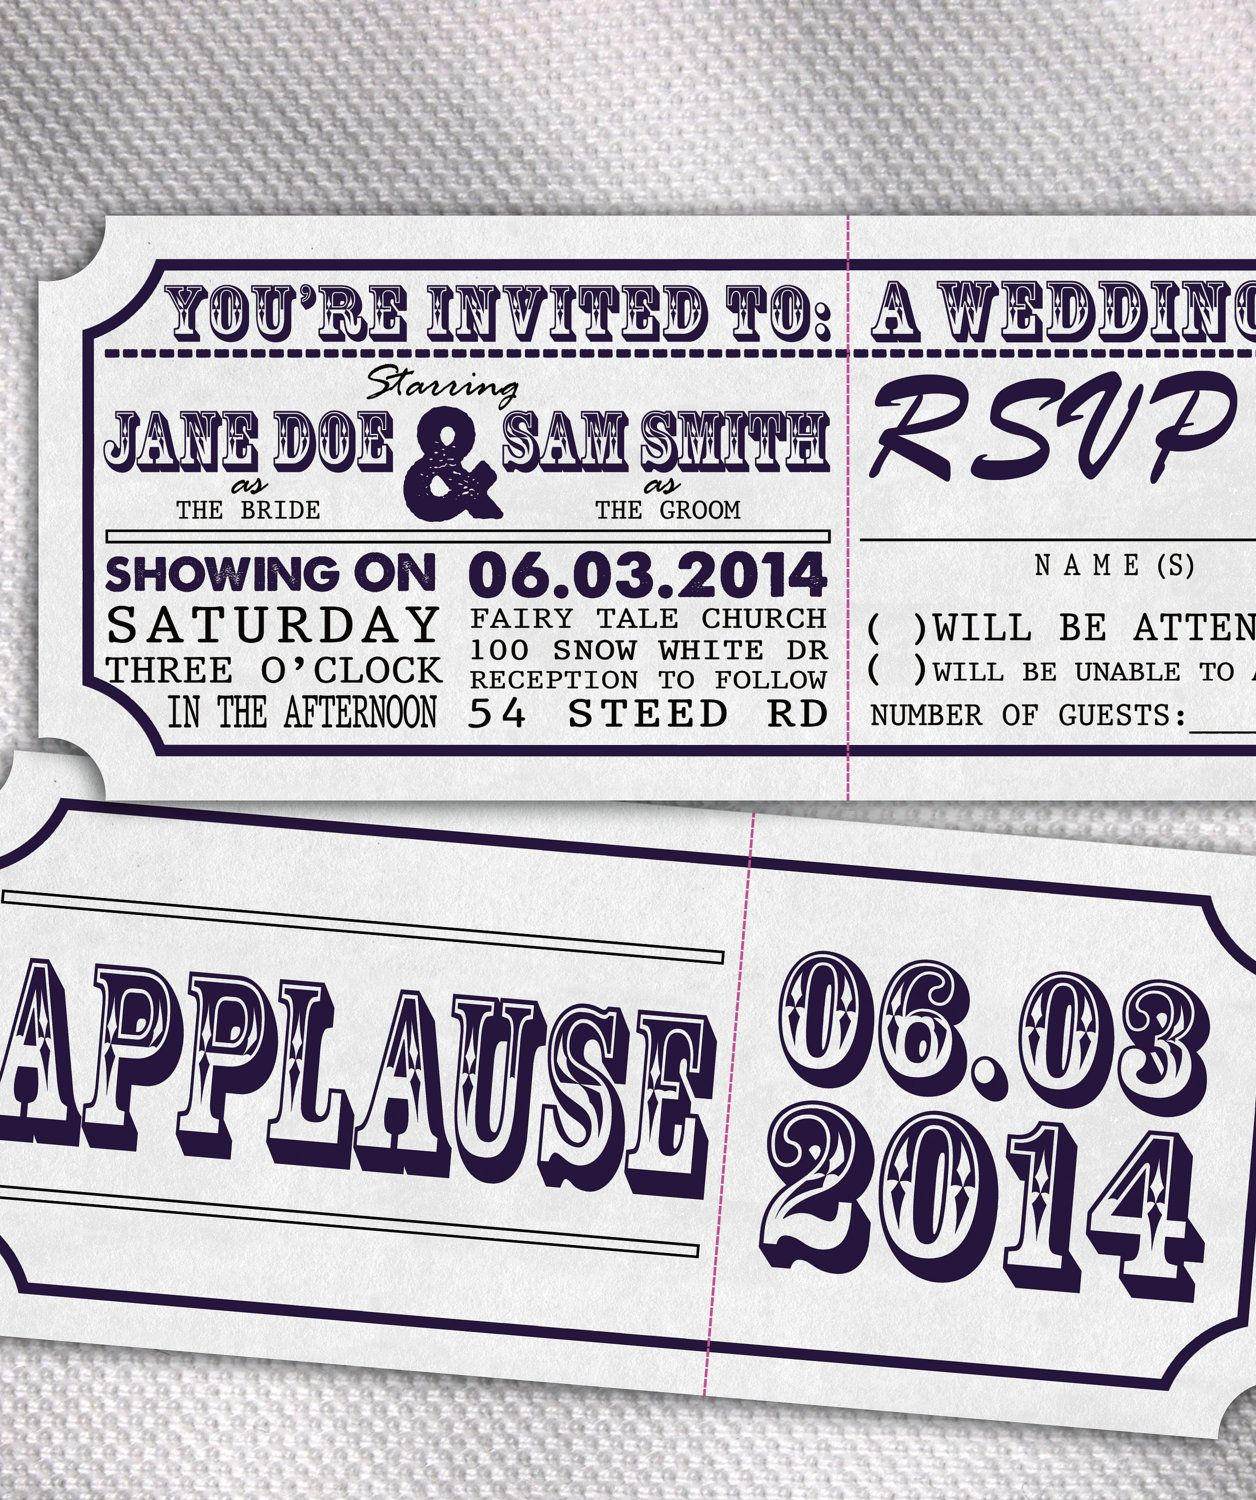 SAMPLE Movie Ticket Wedding Invitation Set by AprilSanson on Etsy, $2.75